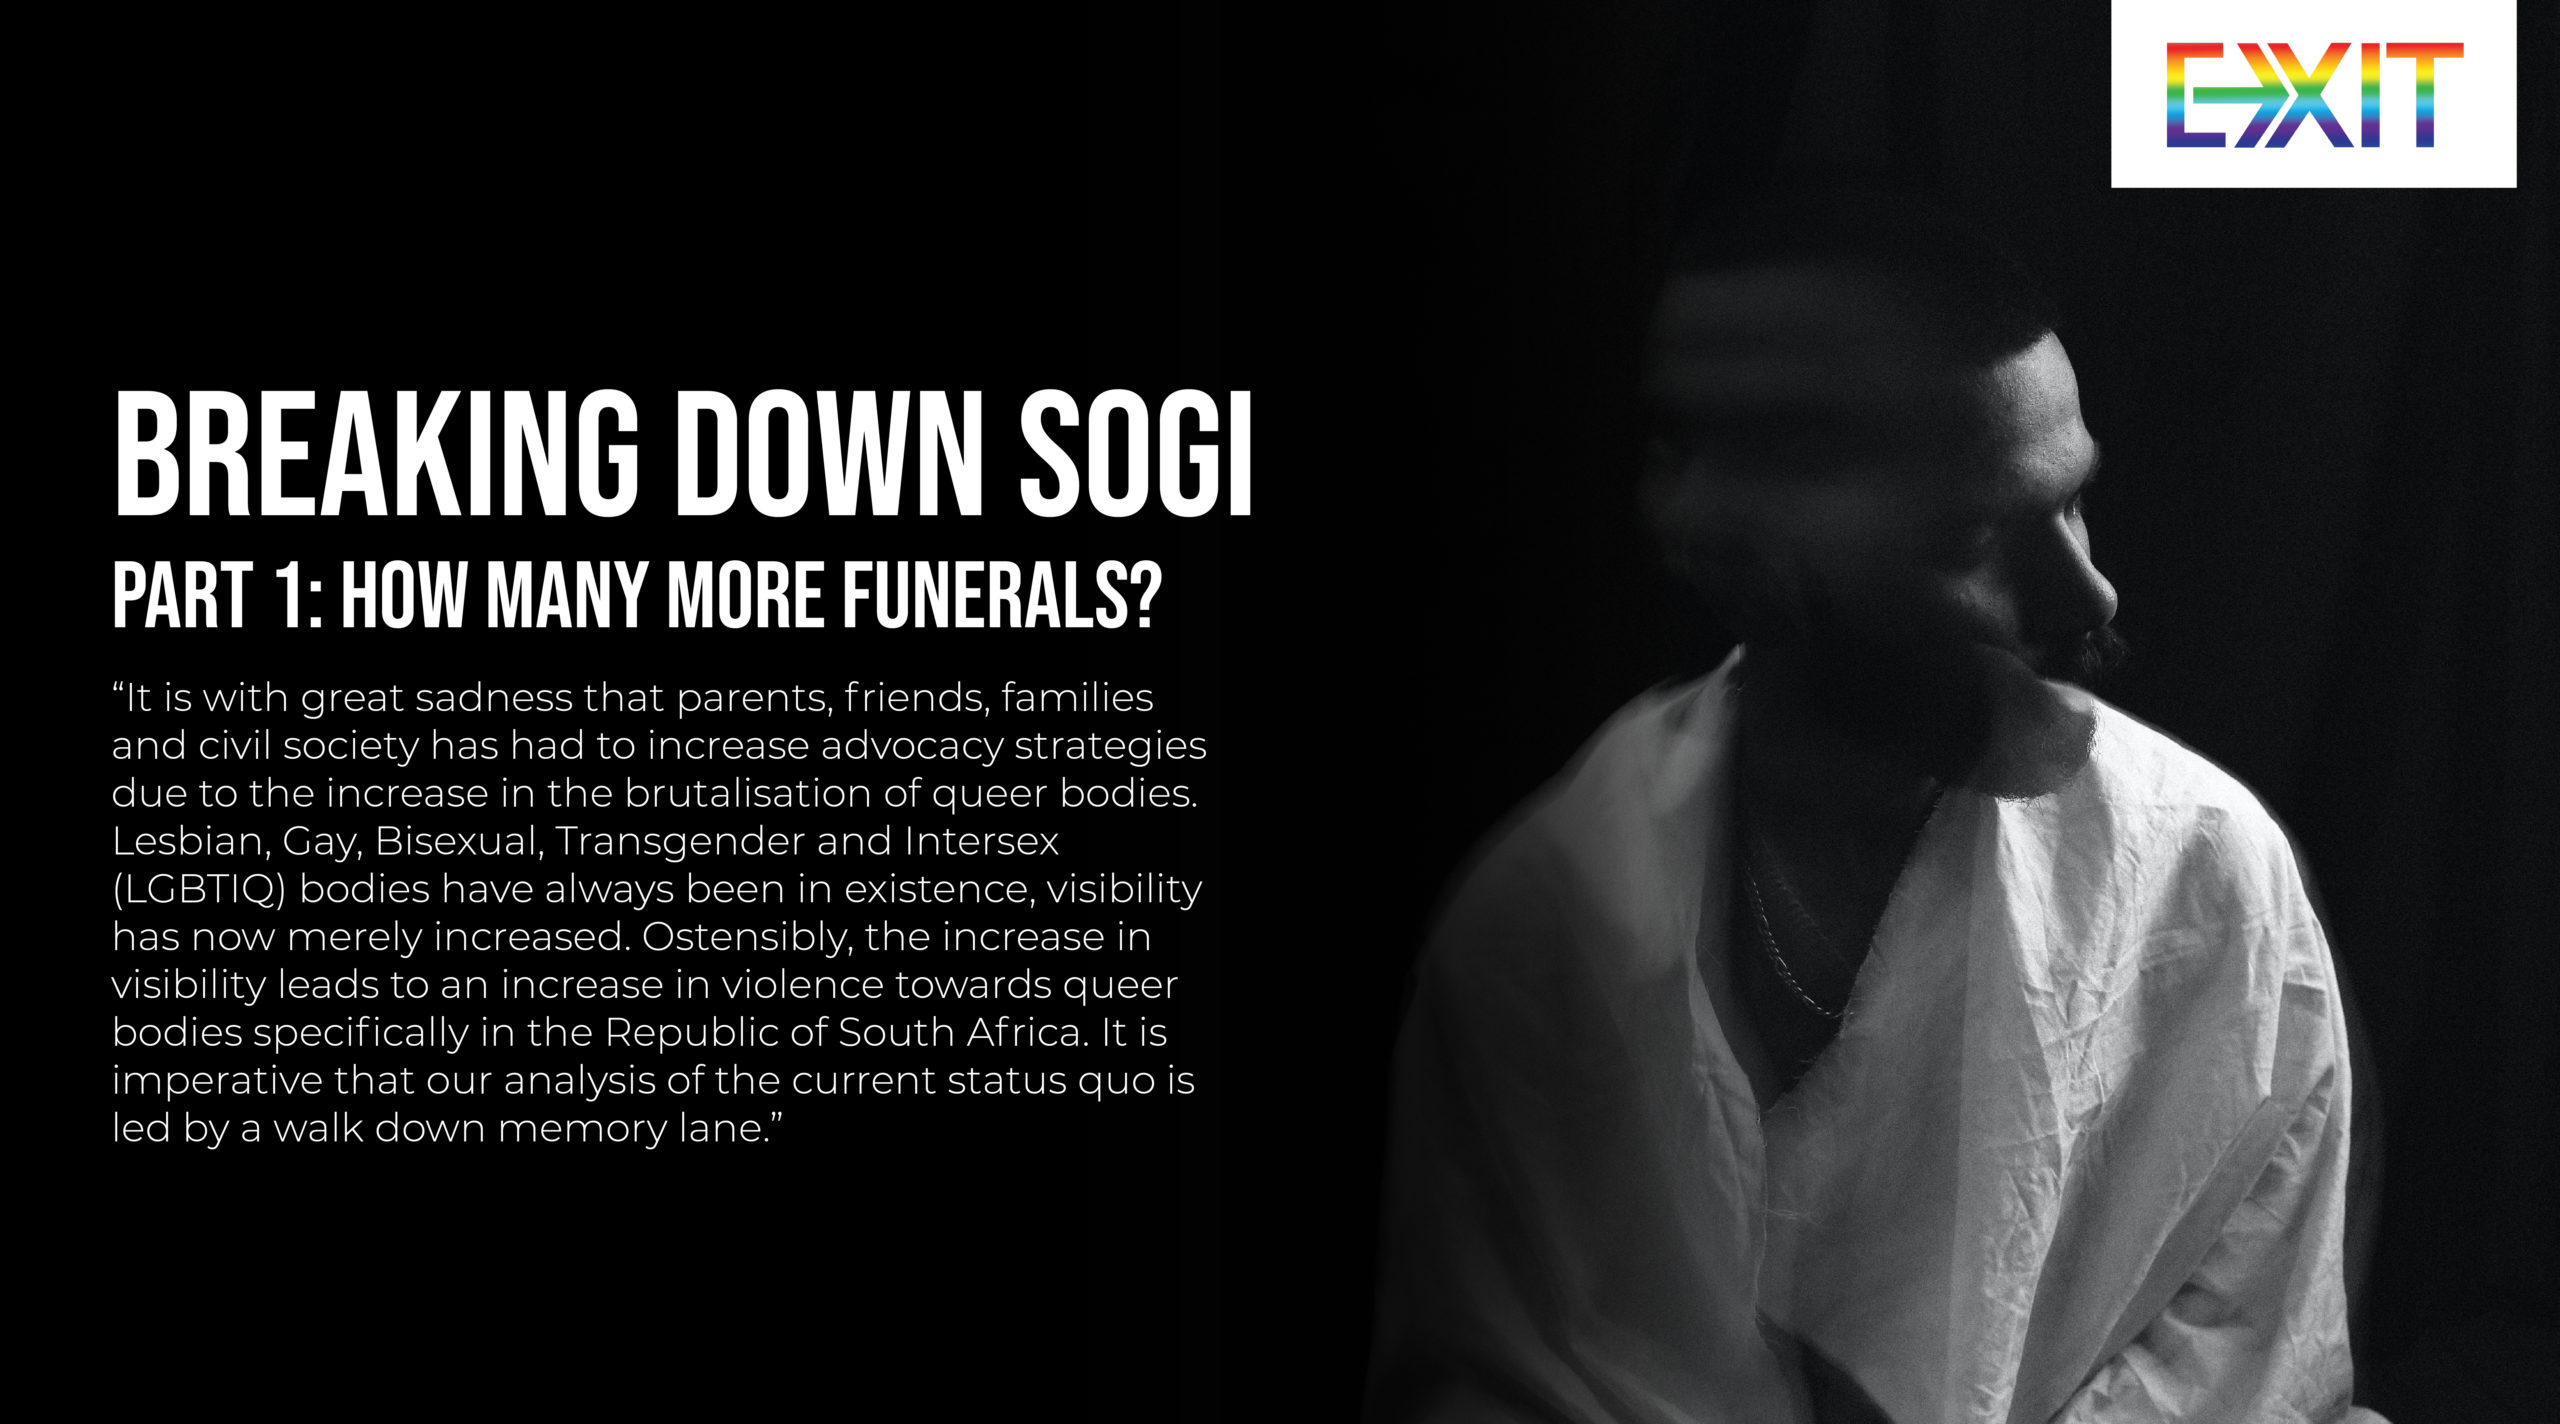 BREAKING DOWN SOGI – PART 1: HOW MANY MORE FUNERALS?